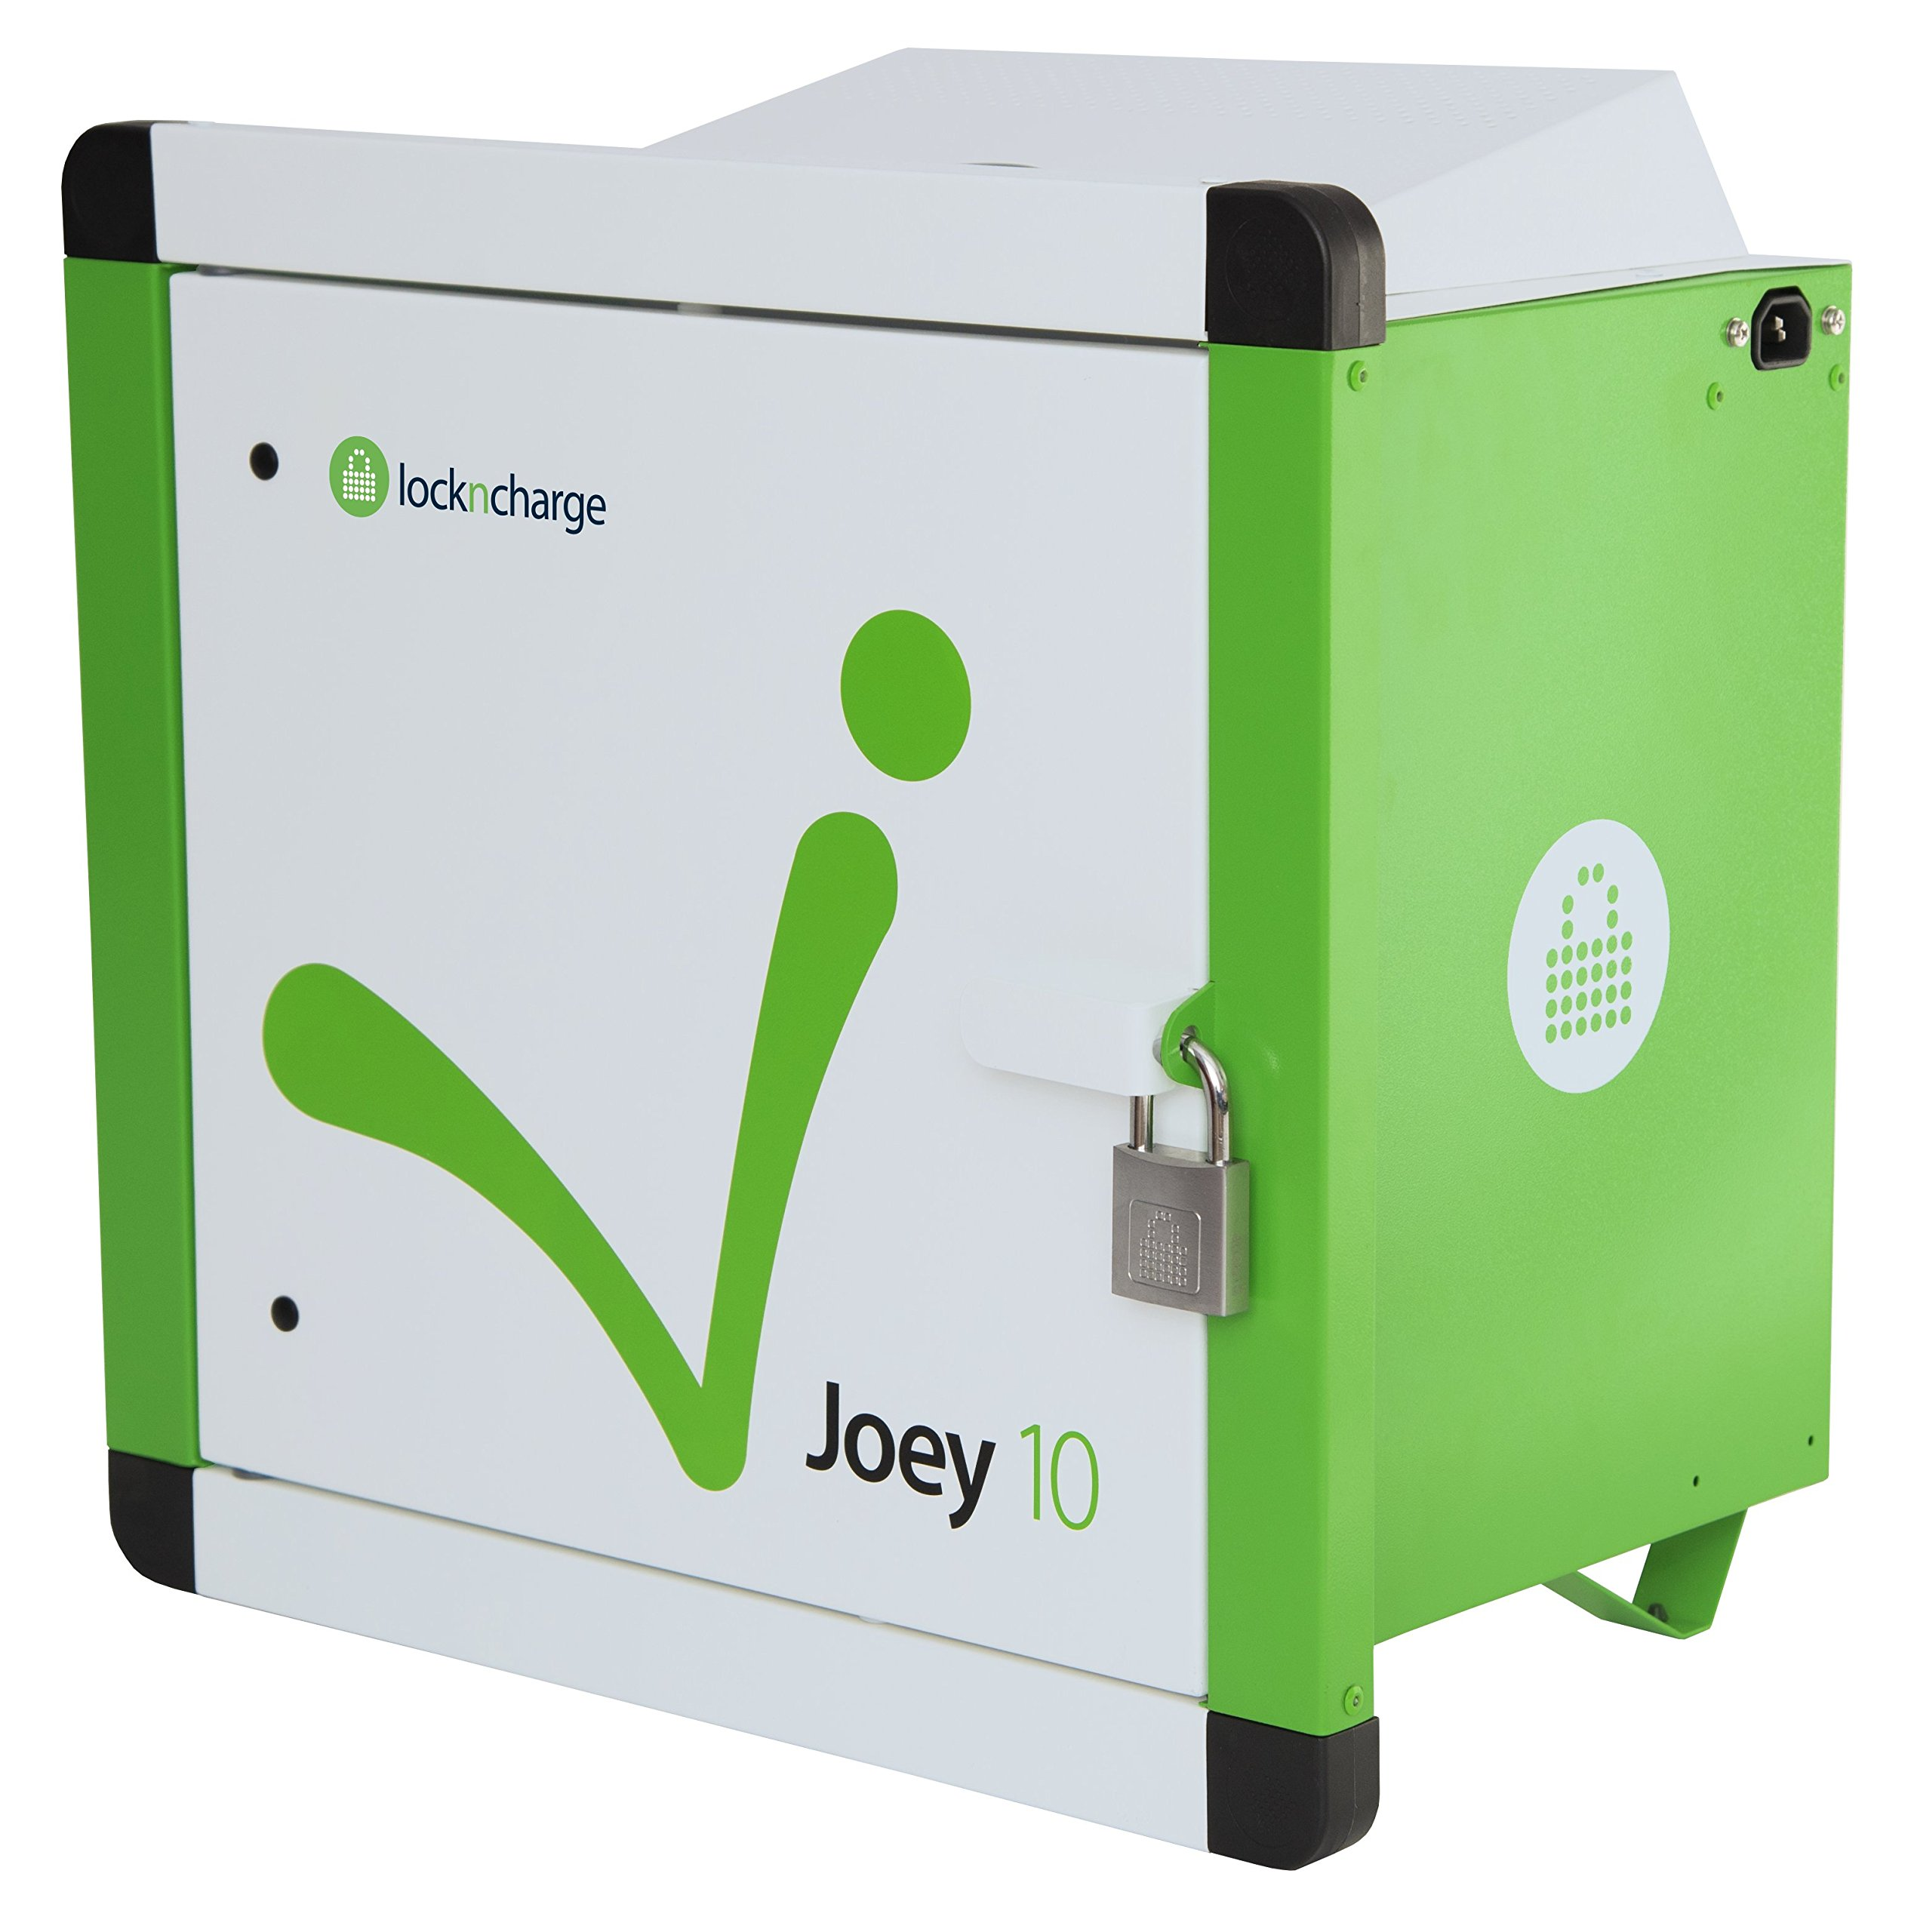 LocknCharge Joey 10 Slot Charging Station, Green/White (10001)